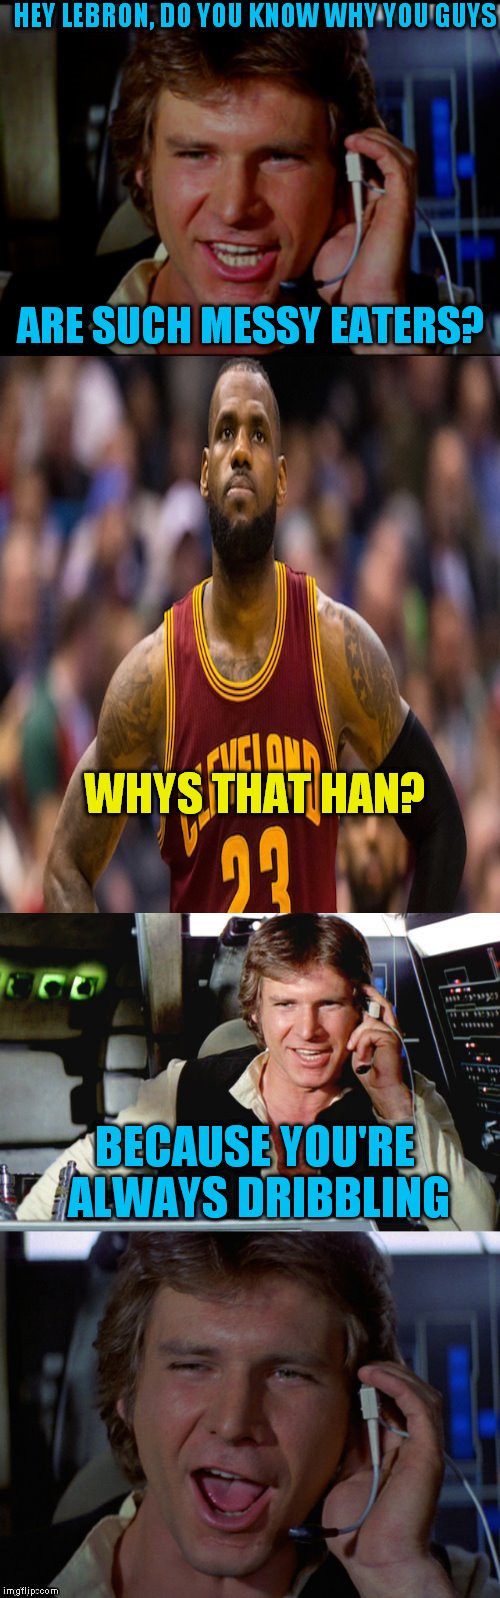 Han Solo Interviews Lebron-James |  HEY LEBRON, DO YOU KNOW WHY YOU GUYS; ARE SUCH MESSY EATERS? WHYS THAT HAN? BECAUSE YOU'RE ALWAYS DRIBBLING | image tagged in bad pun han solo,lebron james,funny meme,starwars,basketball,interview | made w/ Imgflip meme maker